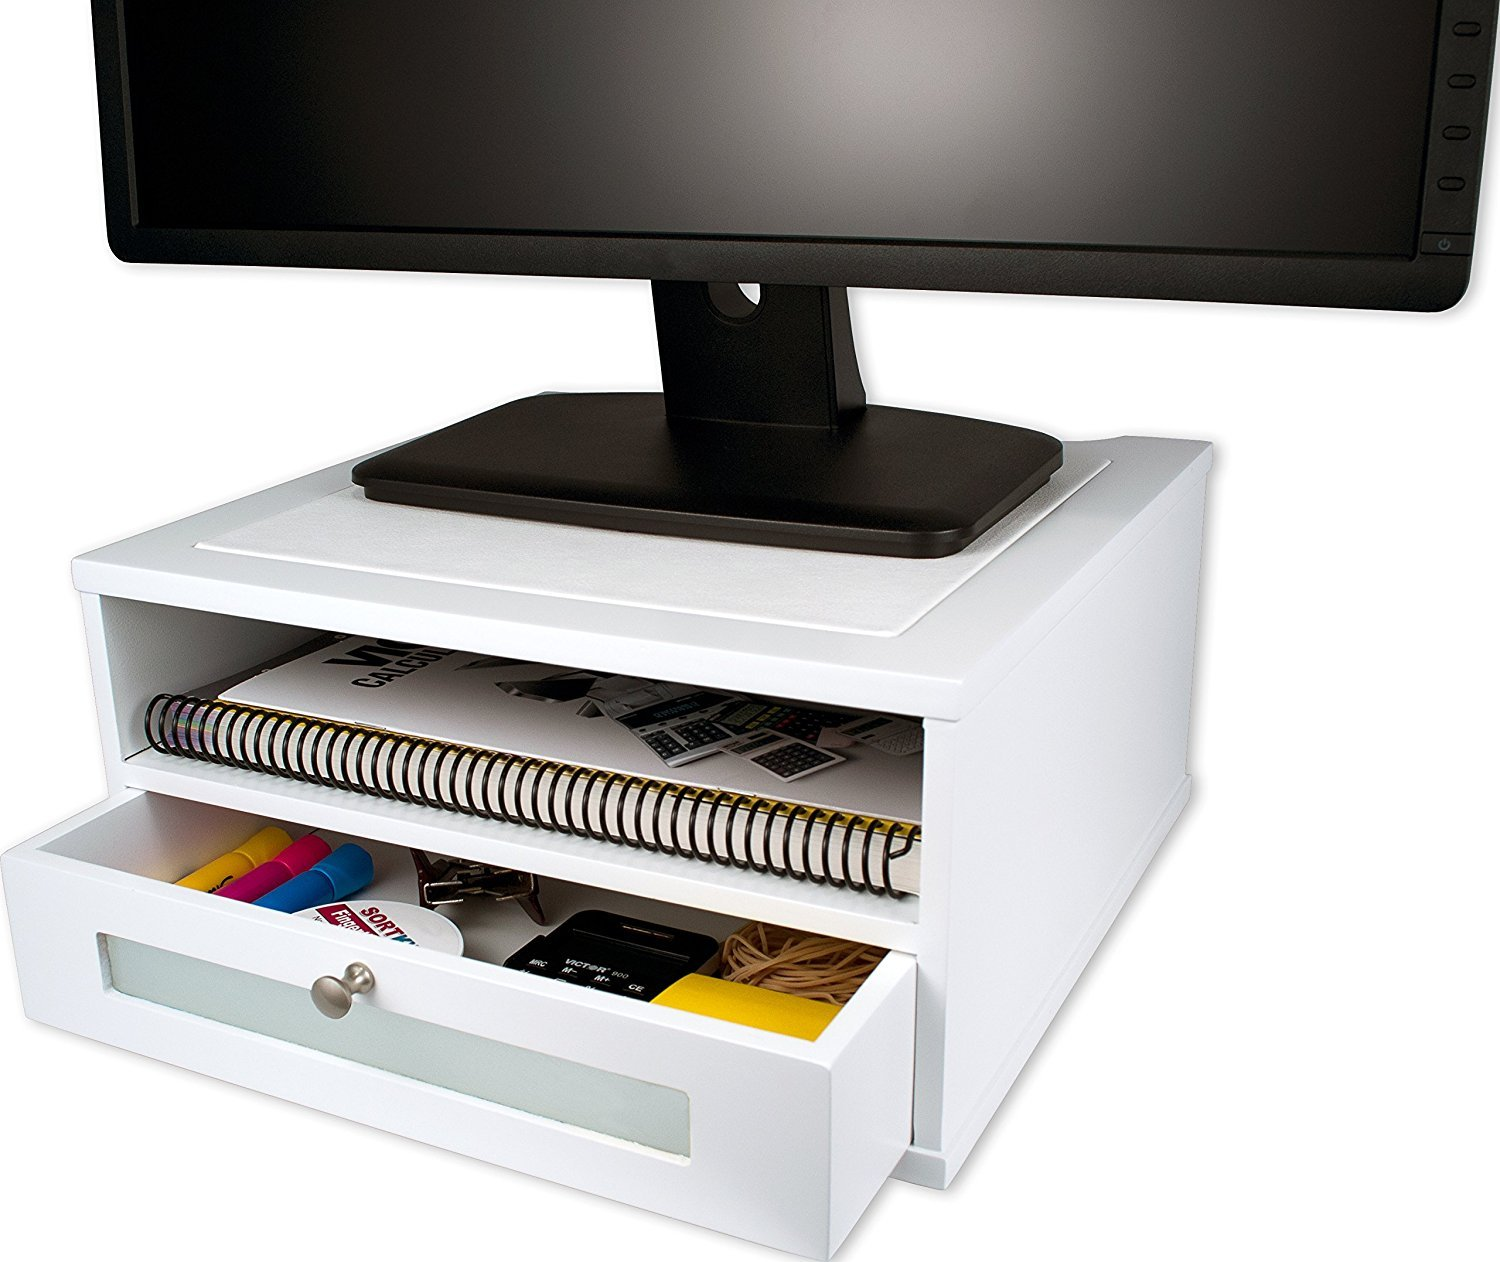 White Monitor Stand - Wooden Construction with Storage Compartments by Victor B00HK1T2HY ピュアホワイト ピュアホワイト